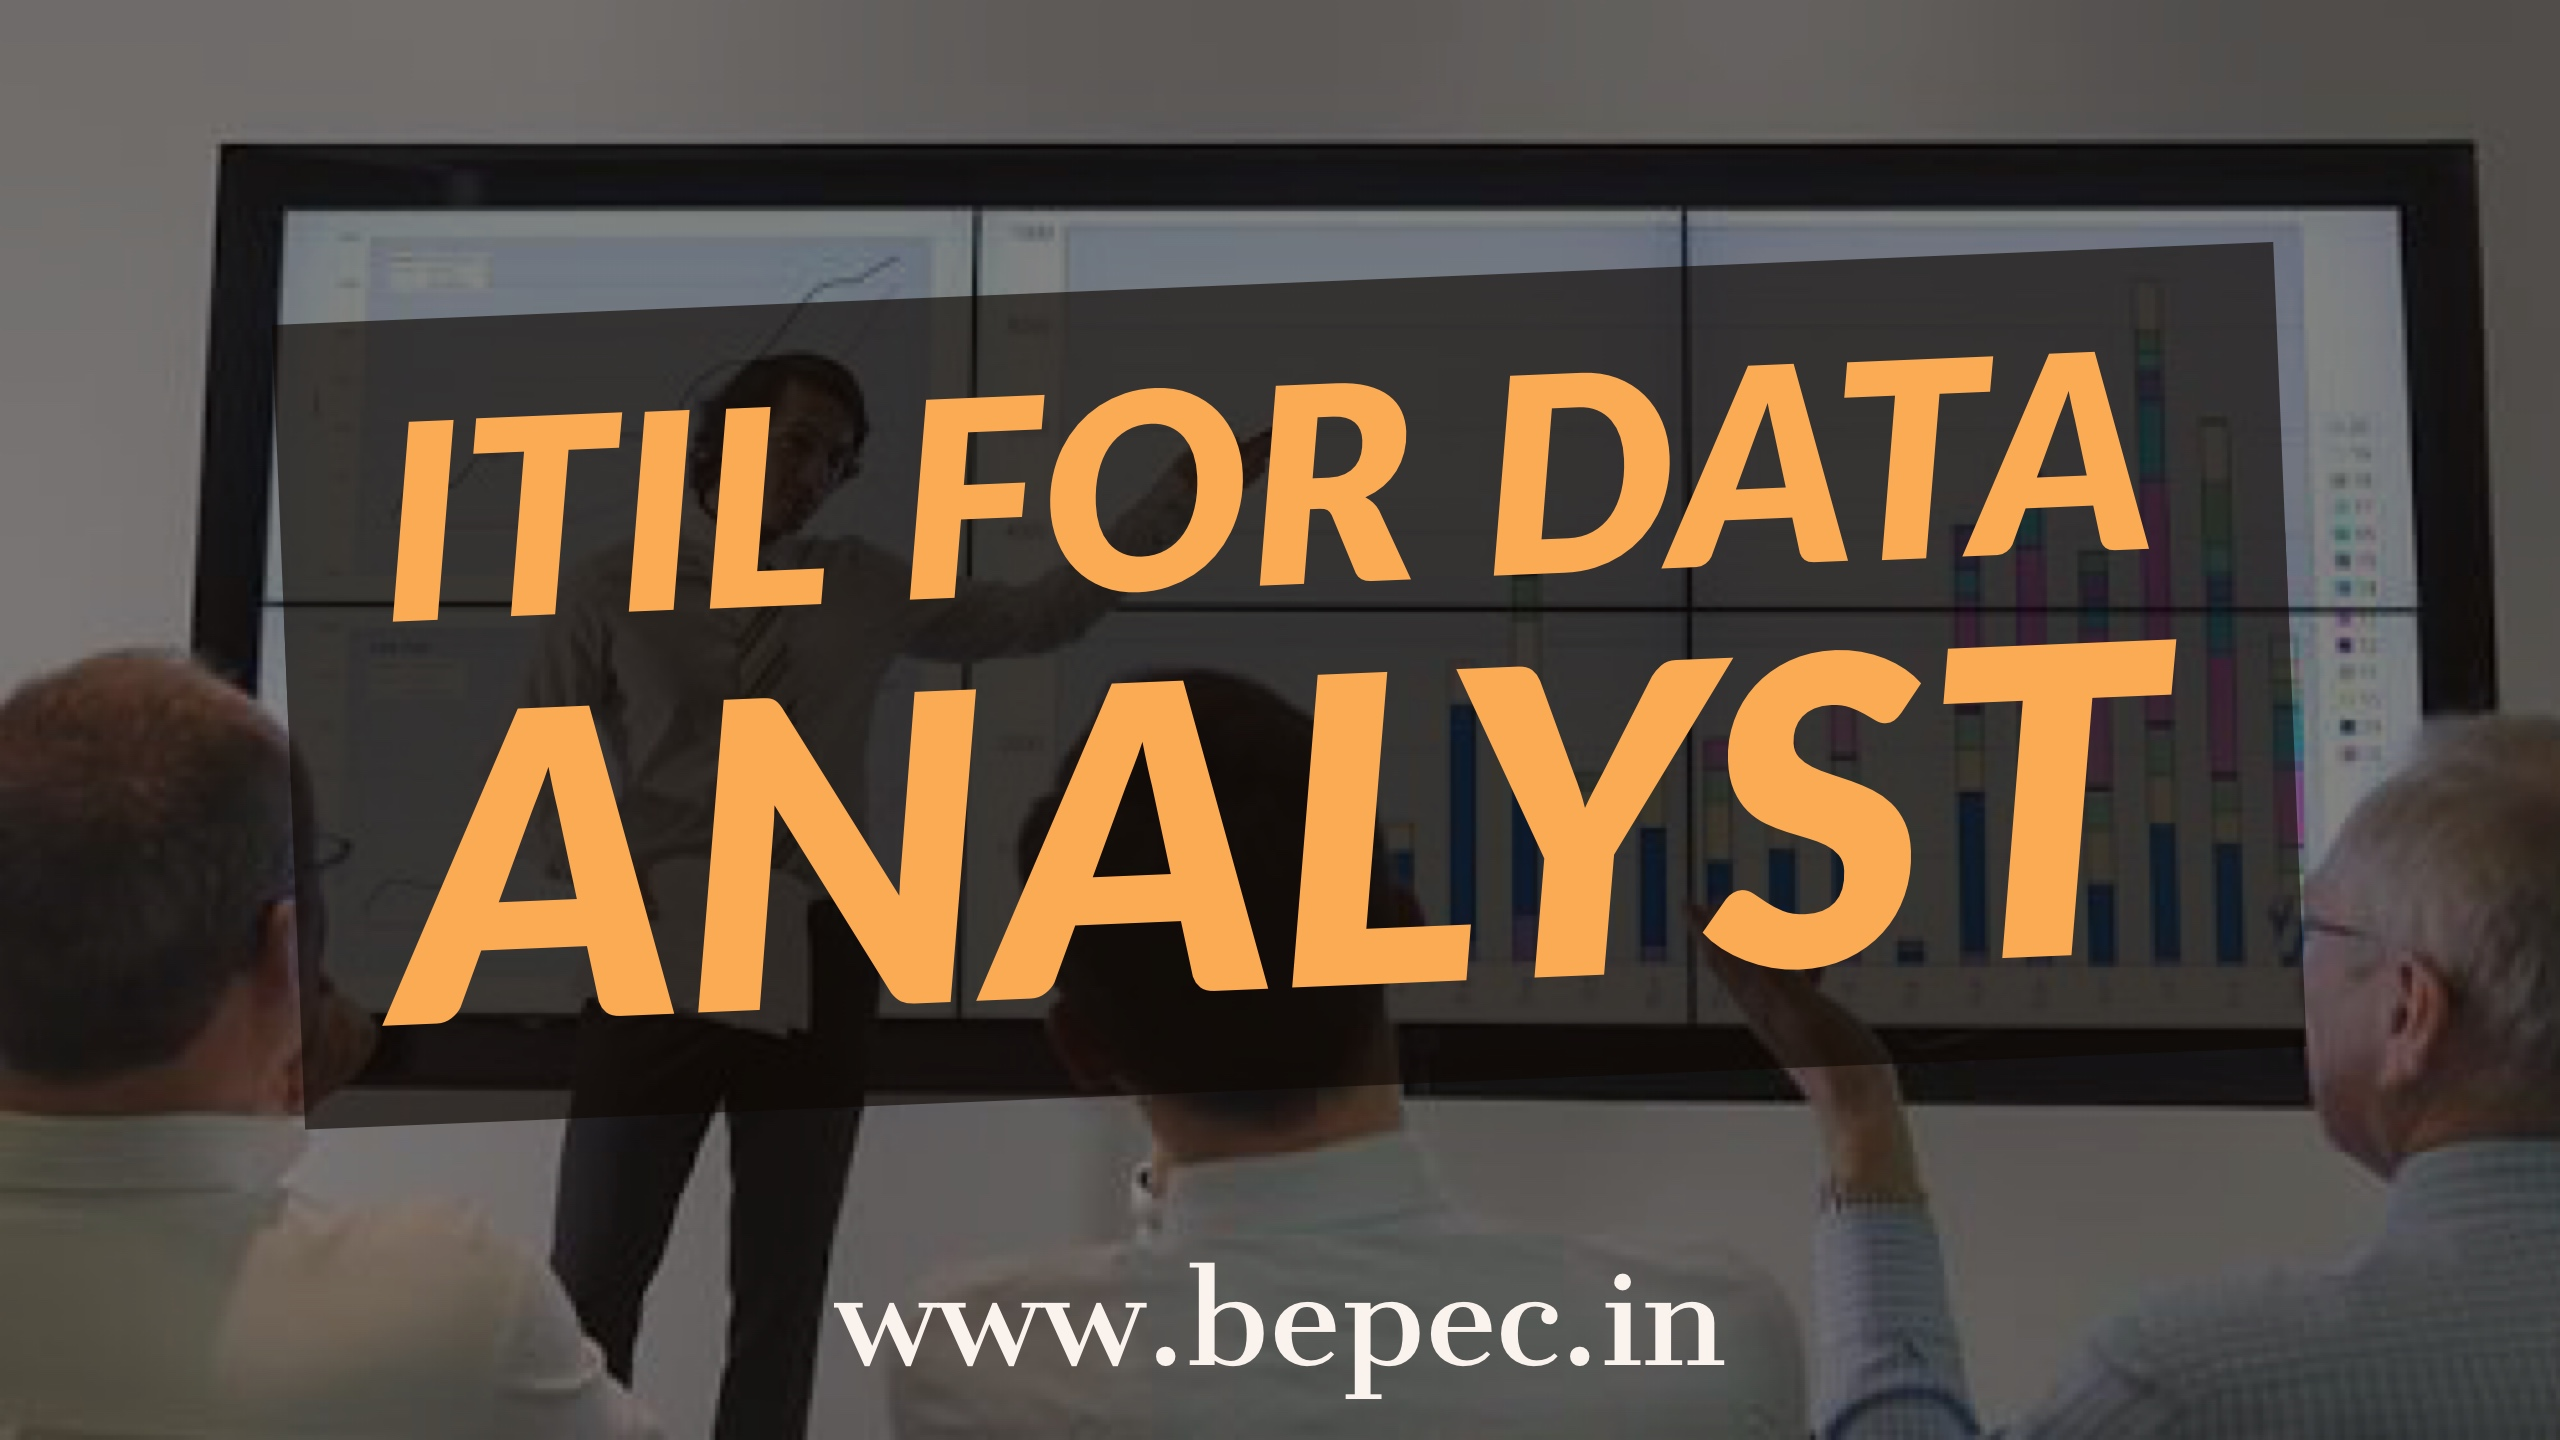 Itil for data analyst bepec why data science bengaluru 1betcityfo Gallery